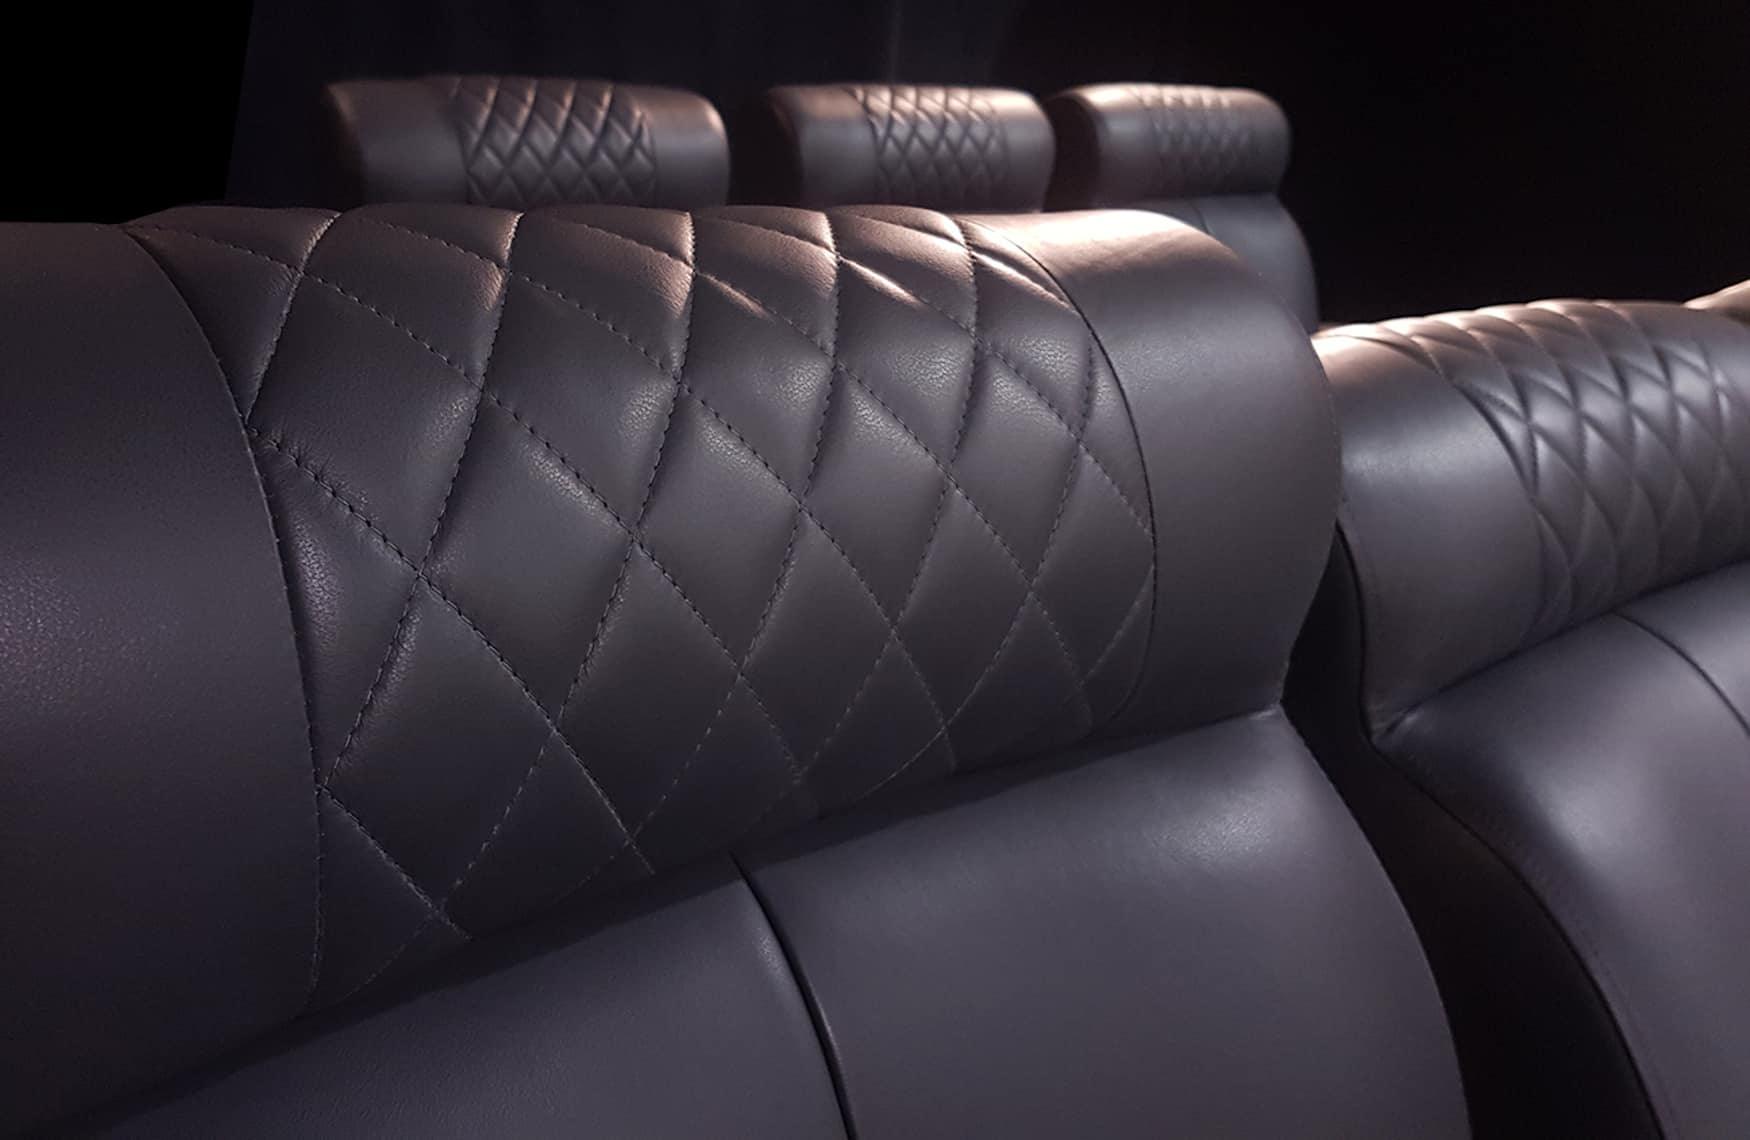 Home theatre chair diamond leather pattern image